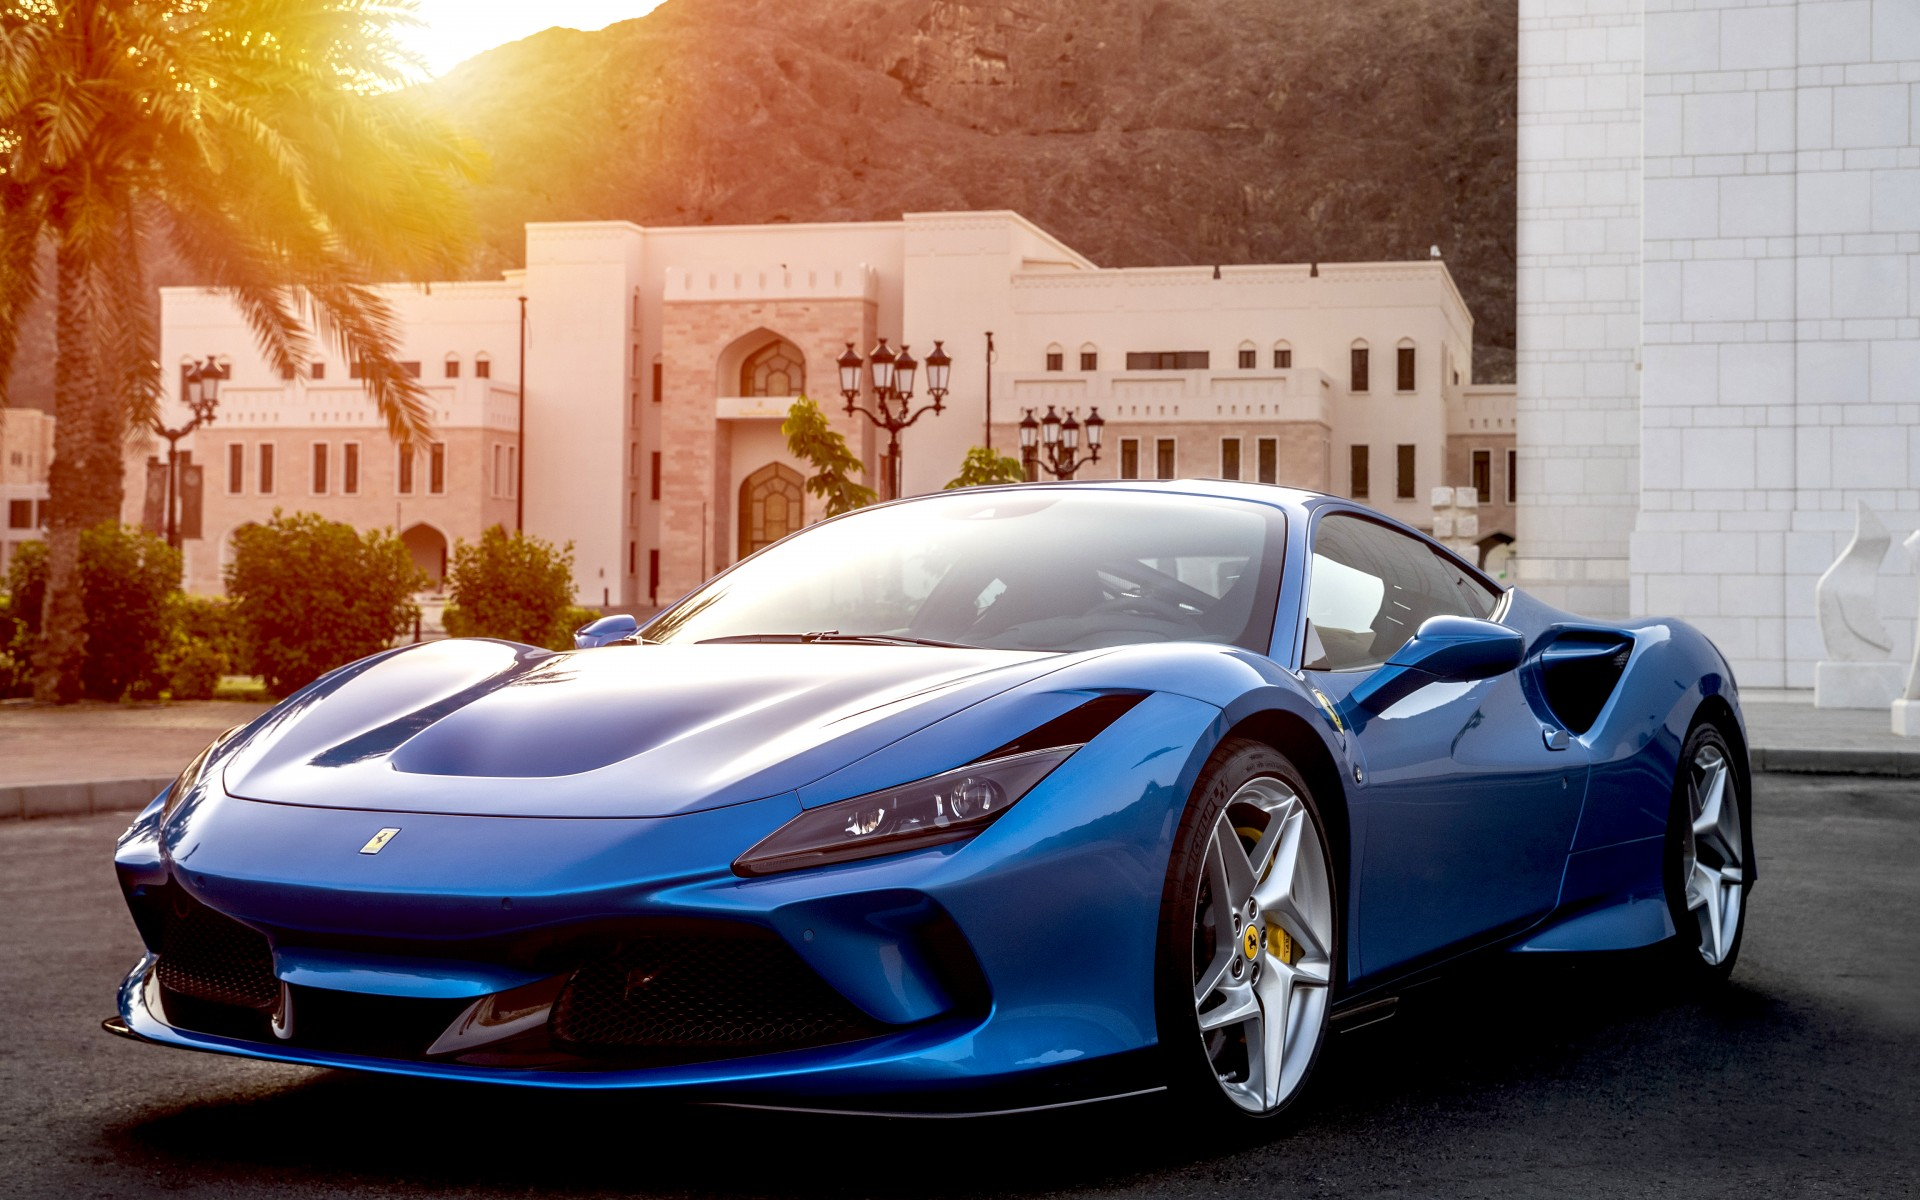 Ferrari F8 Tributo Blue Car Wallpaper